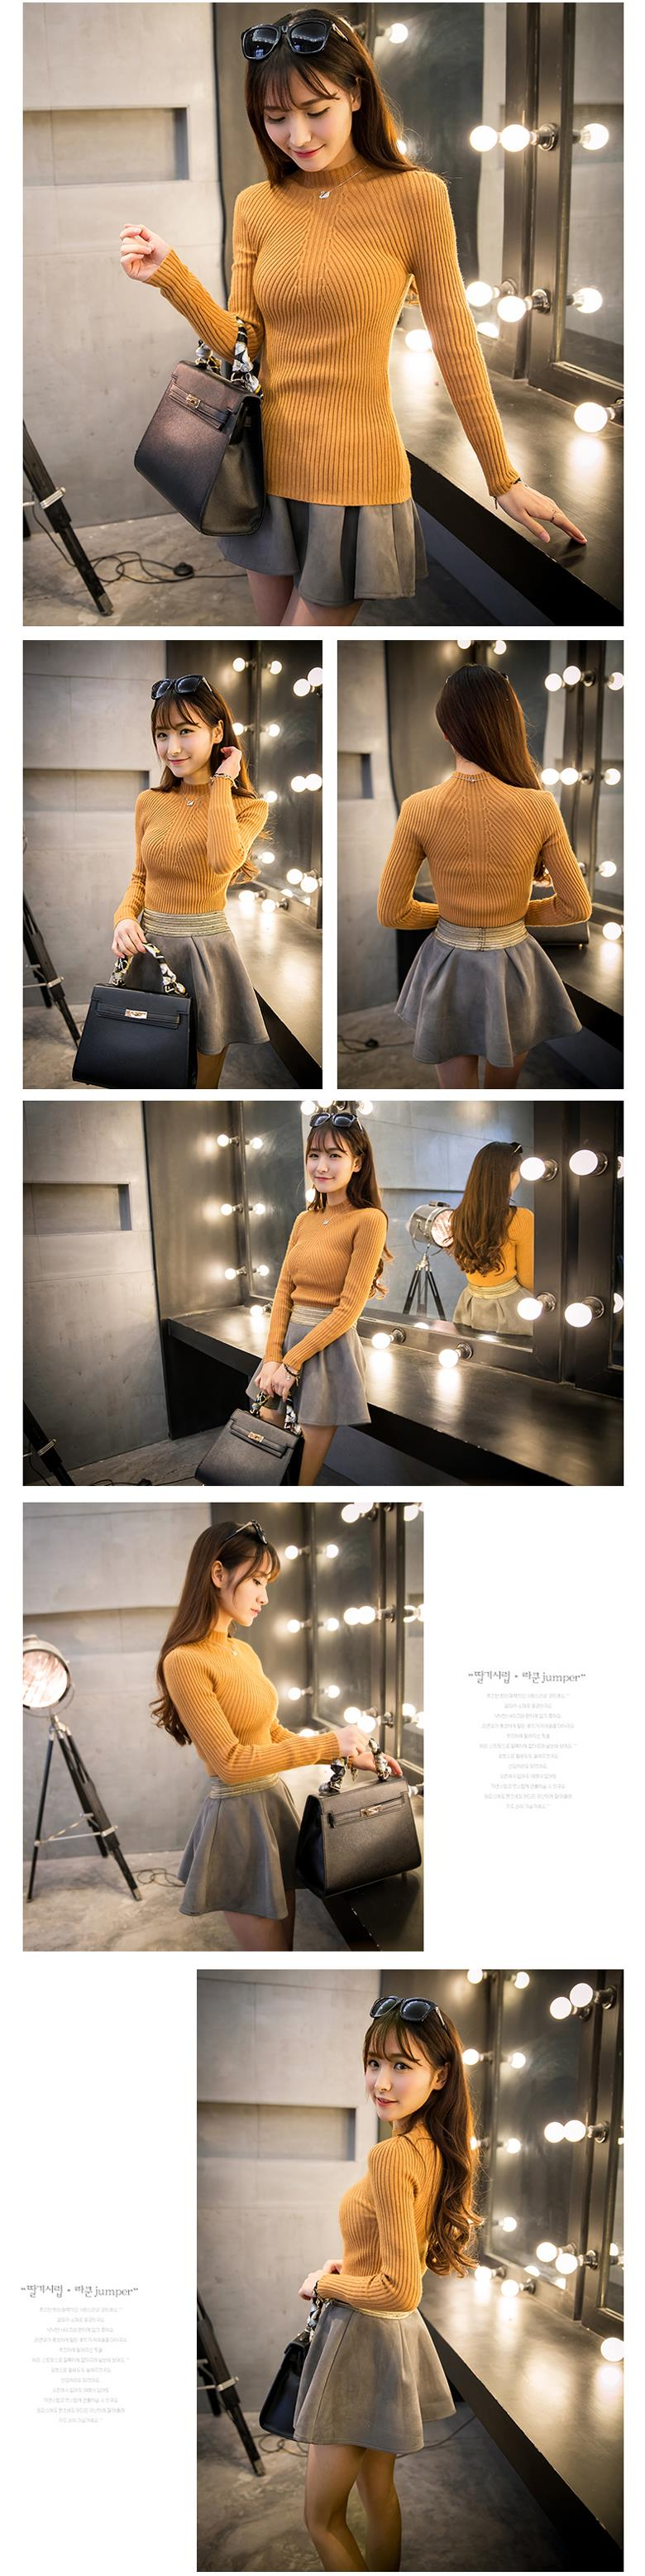 New 17 Spring Fashion Women sweater high elastic Solid Turtleneck sweater women slim sexy tight Bottoming Knitted Pullovers 25